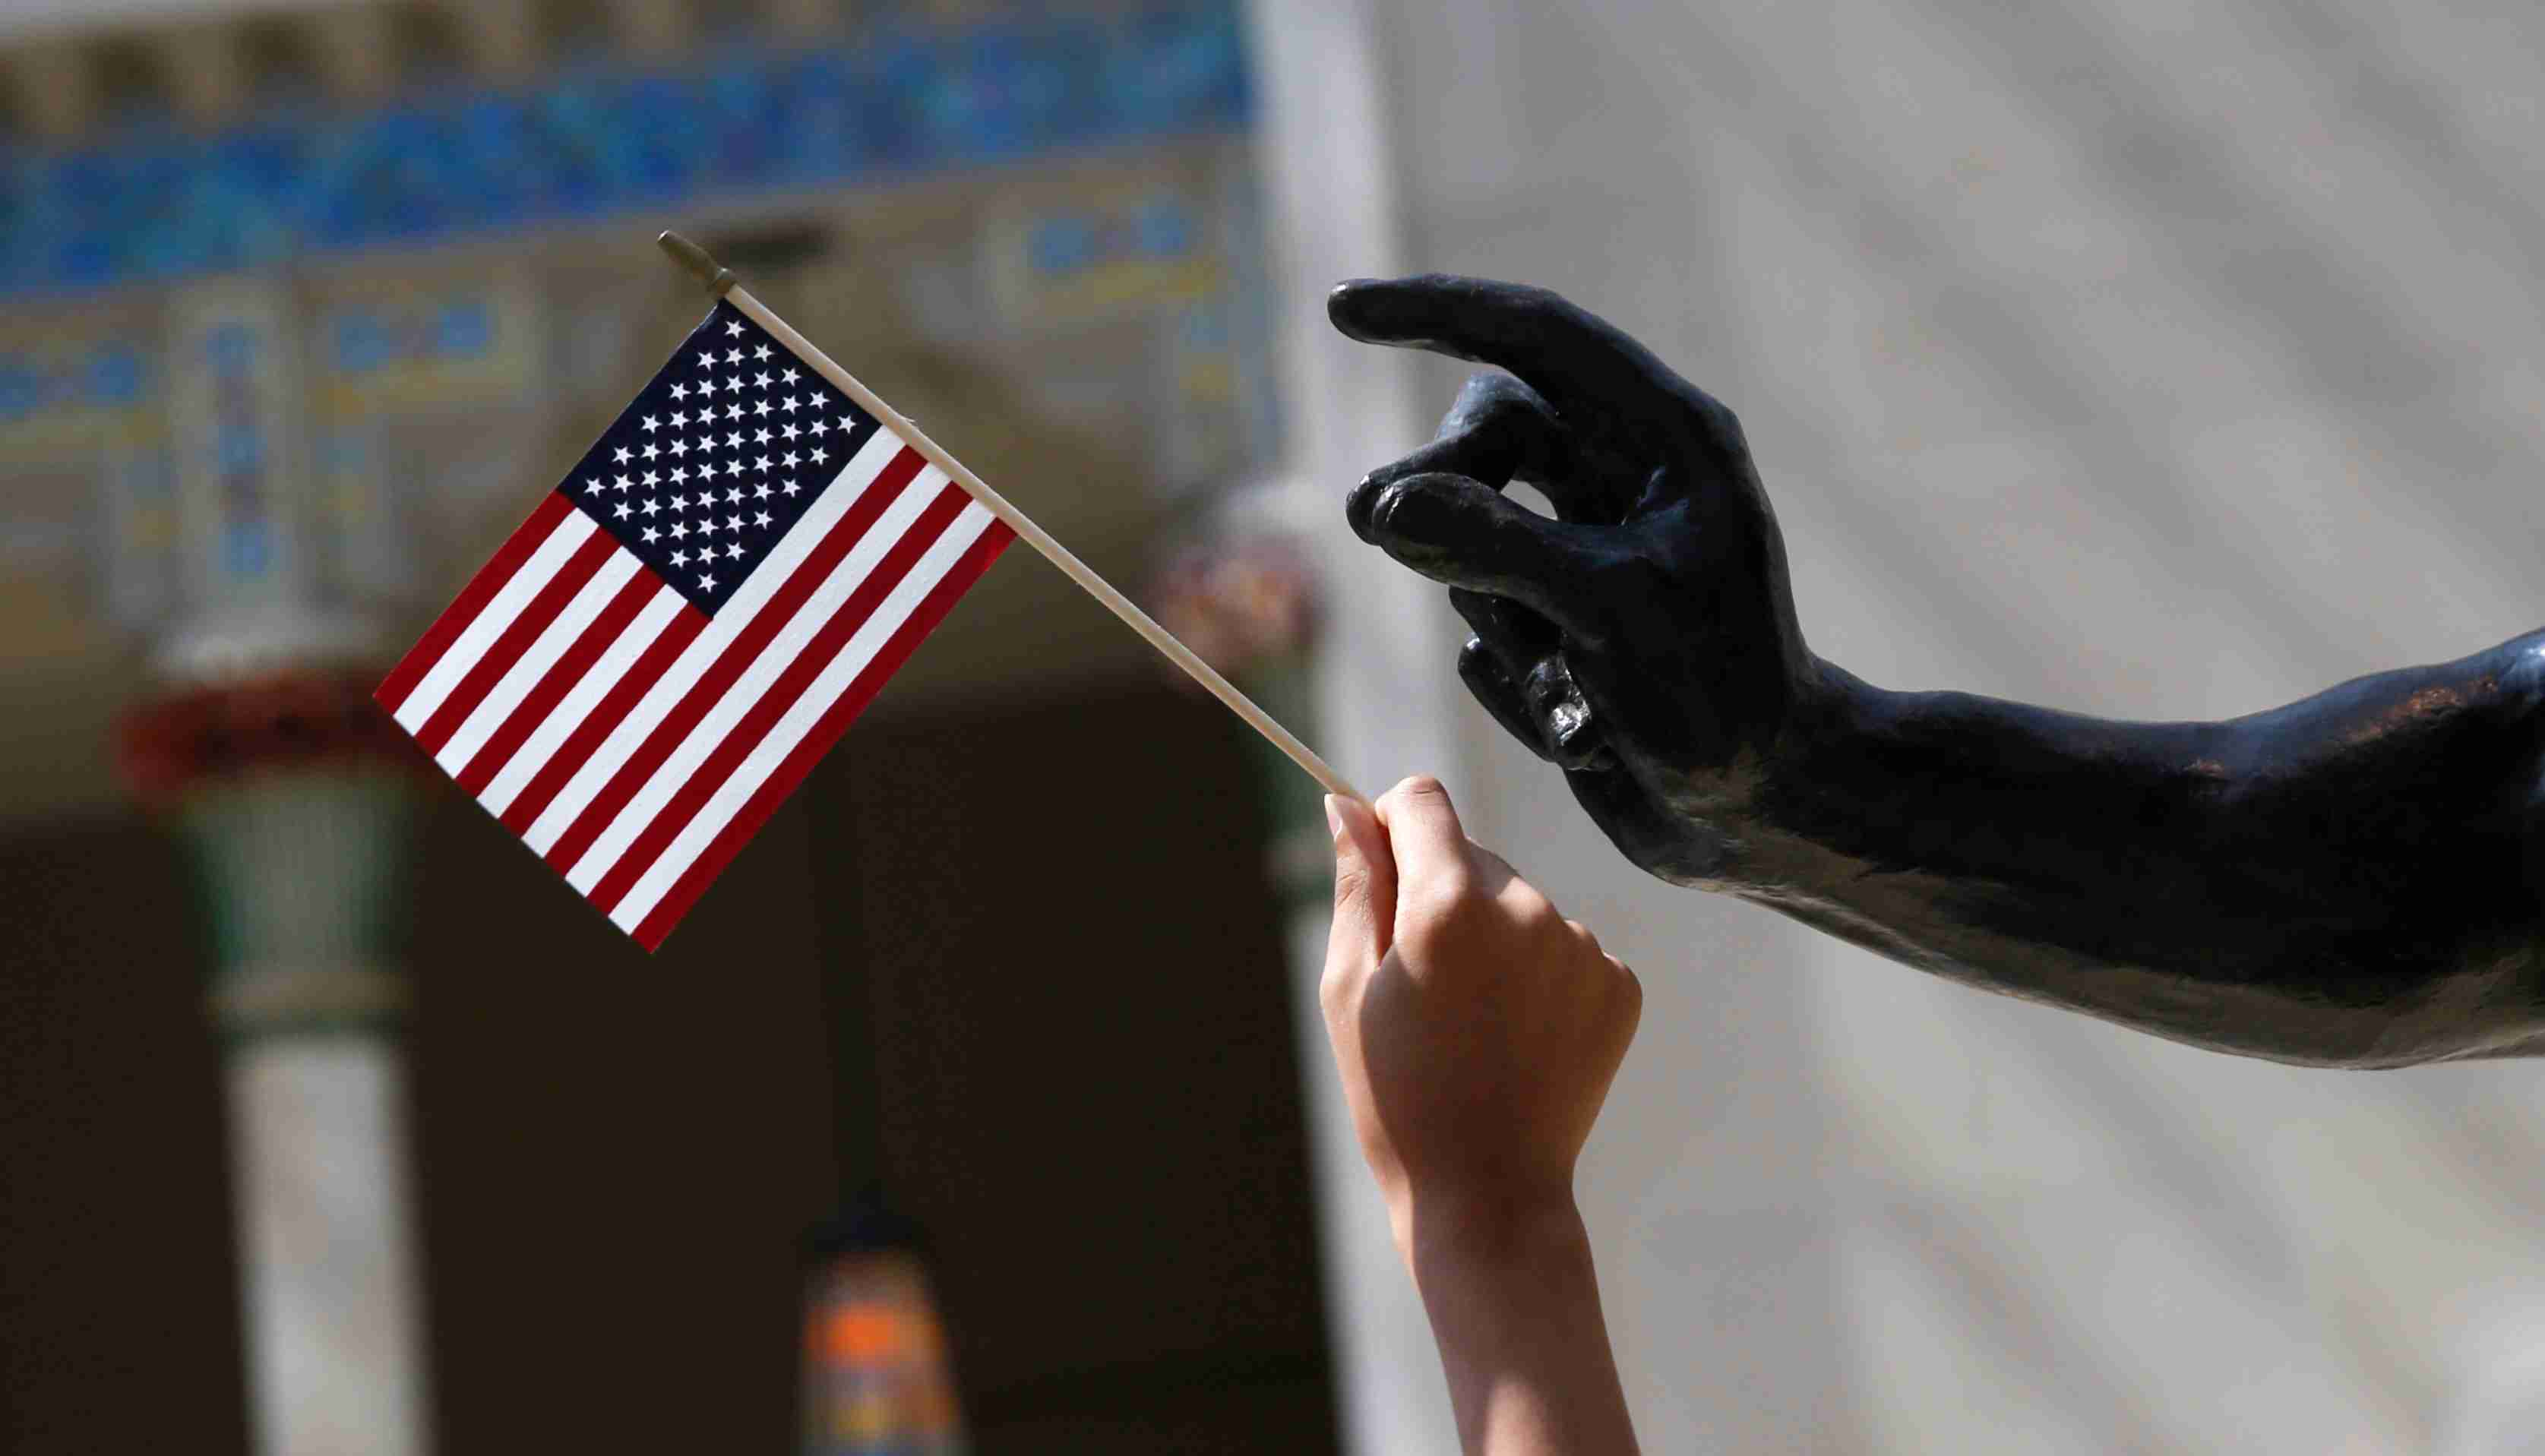 A girl holds a U.S. flag next to a sculpture after a naturalization ceremony at The Metropolitan Museum of Art in New York July 22, 2014. Seventy-five people from 42 countries became American citizens at an event held by U.S. Citizenship and Immigration Services (USCIS) at the Museum.